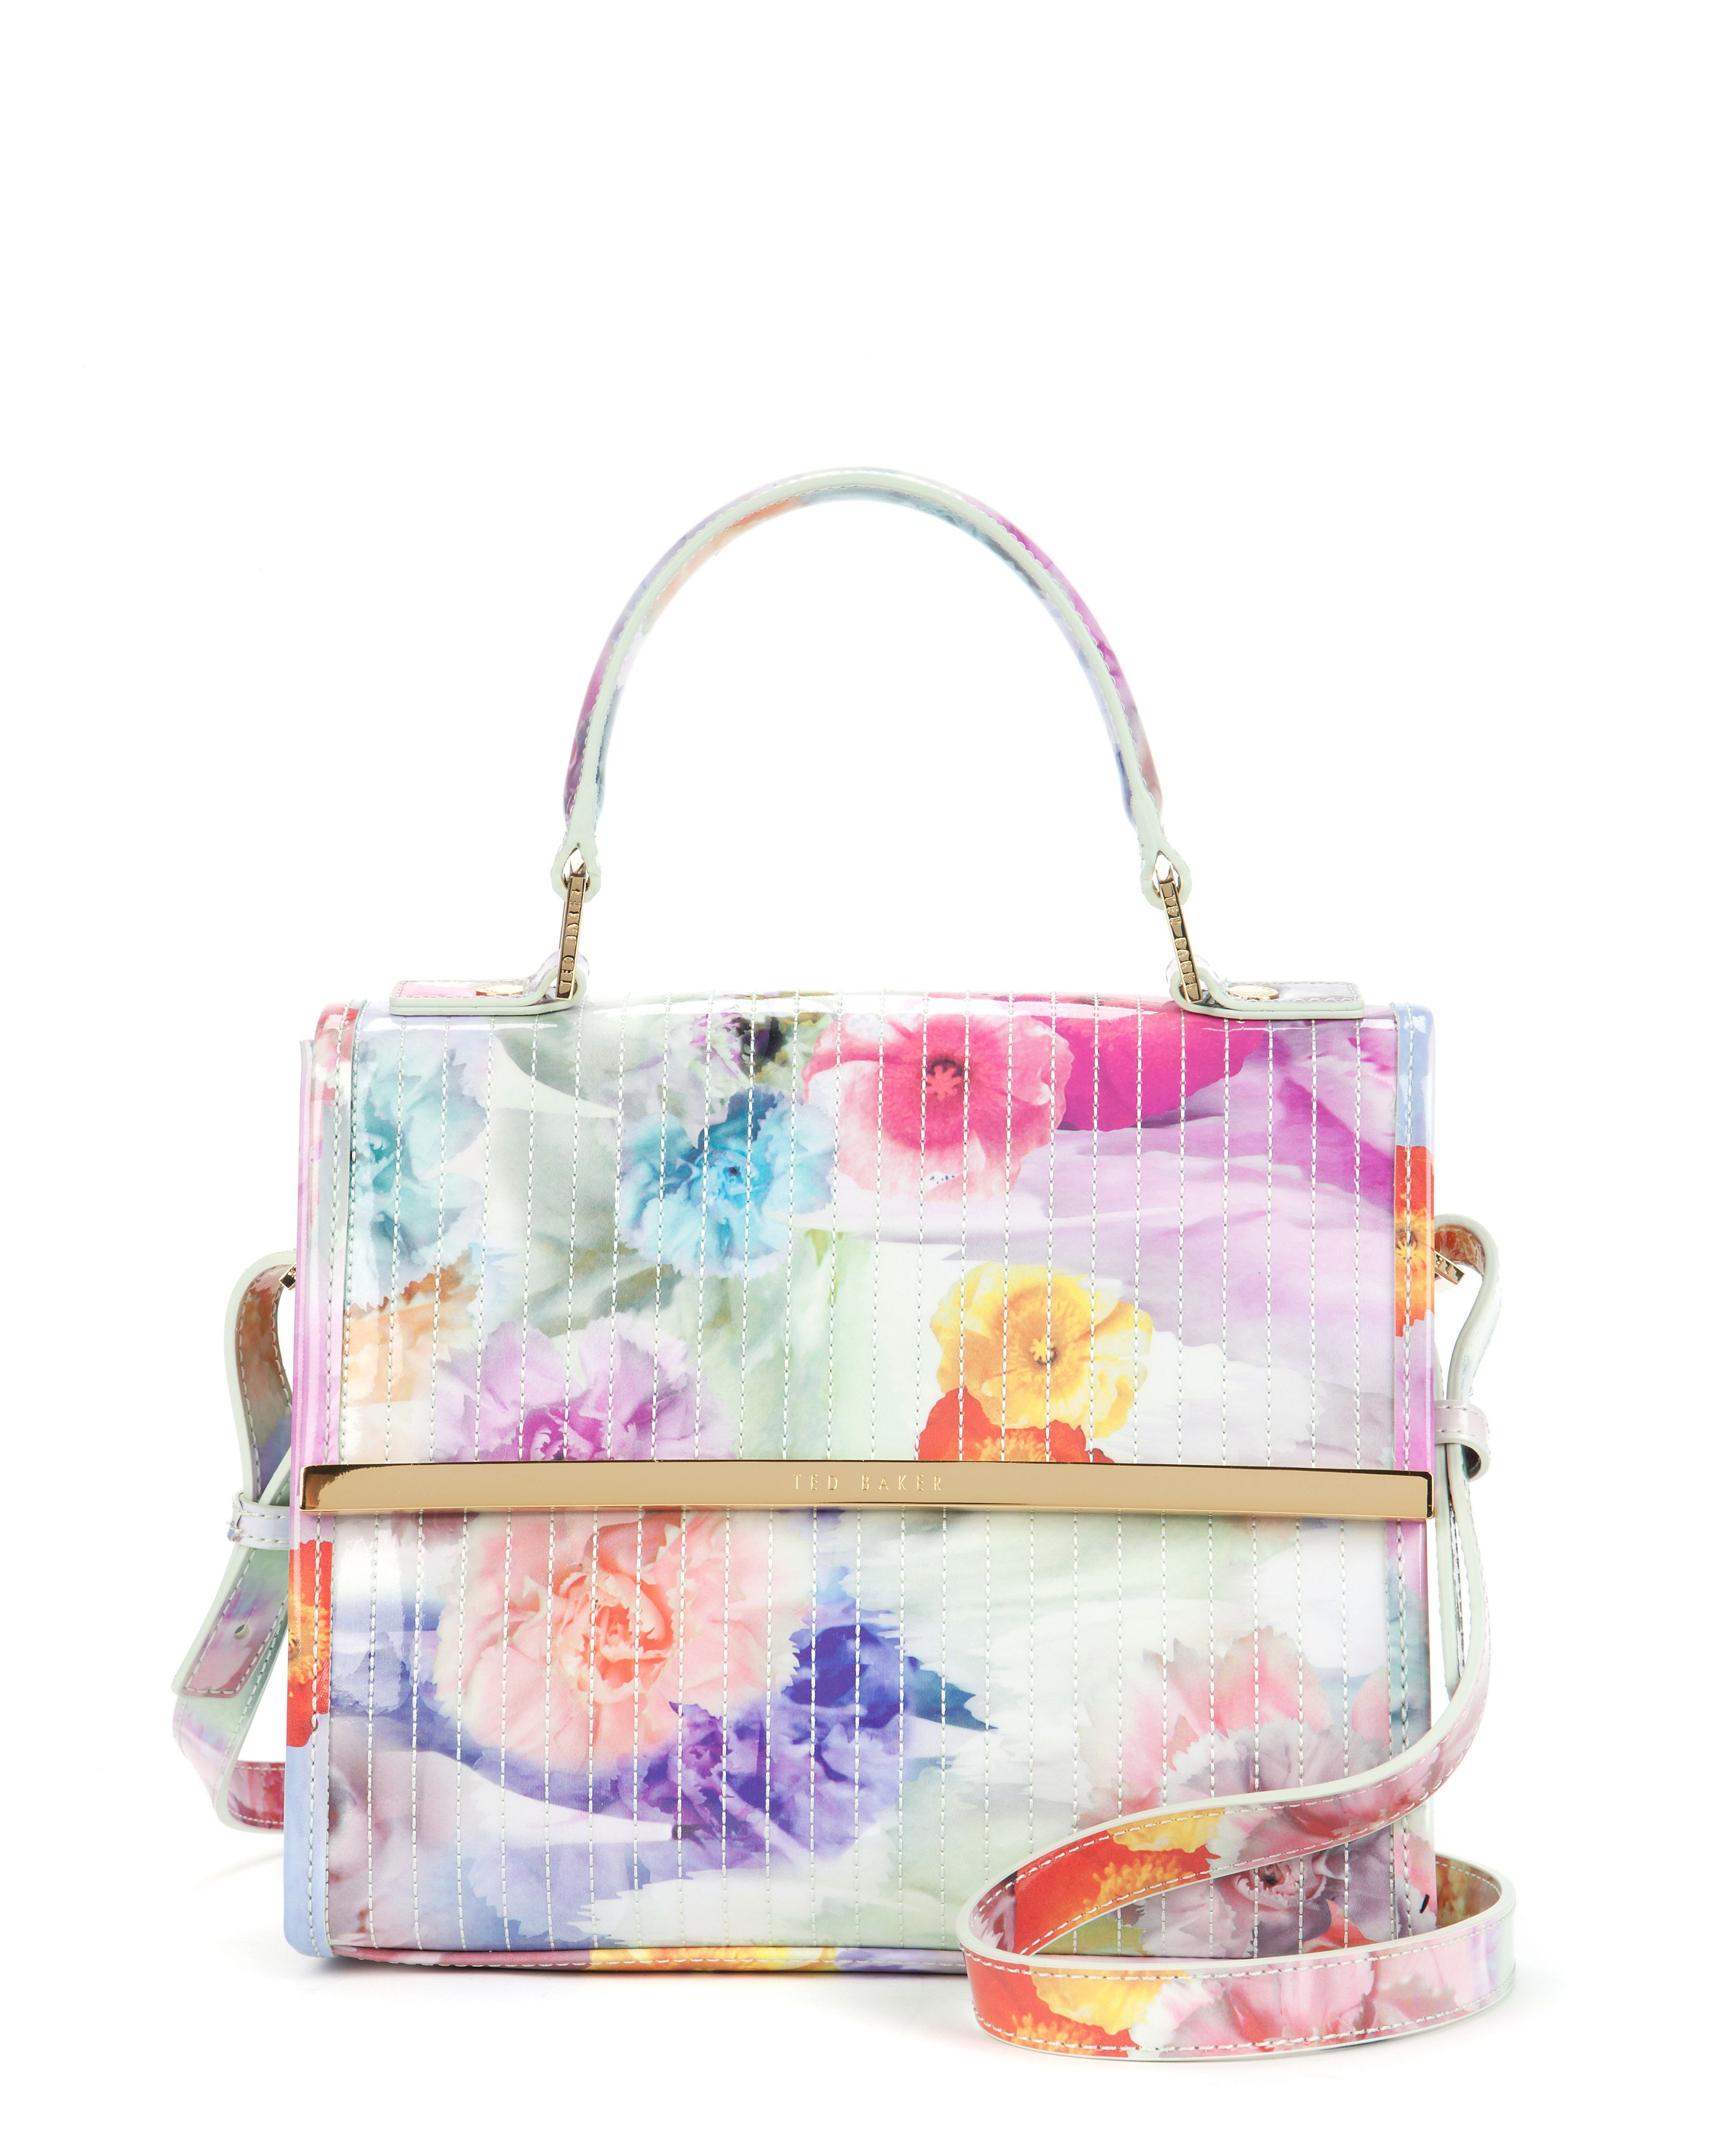 Ted Baker Davena Floral Printed Cross Body Bag In White (Green) | Lyst